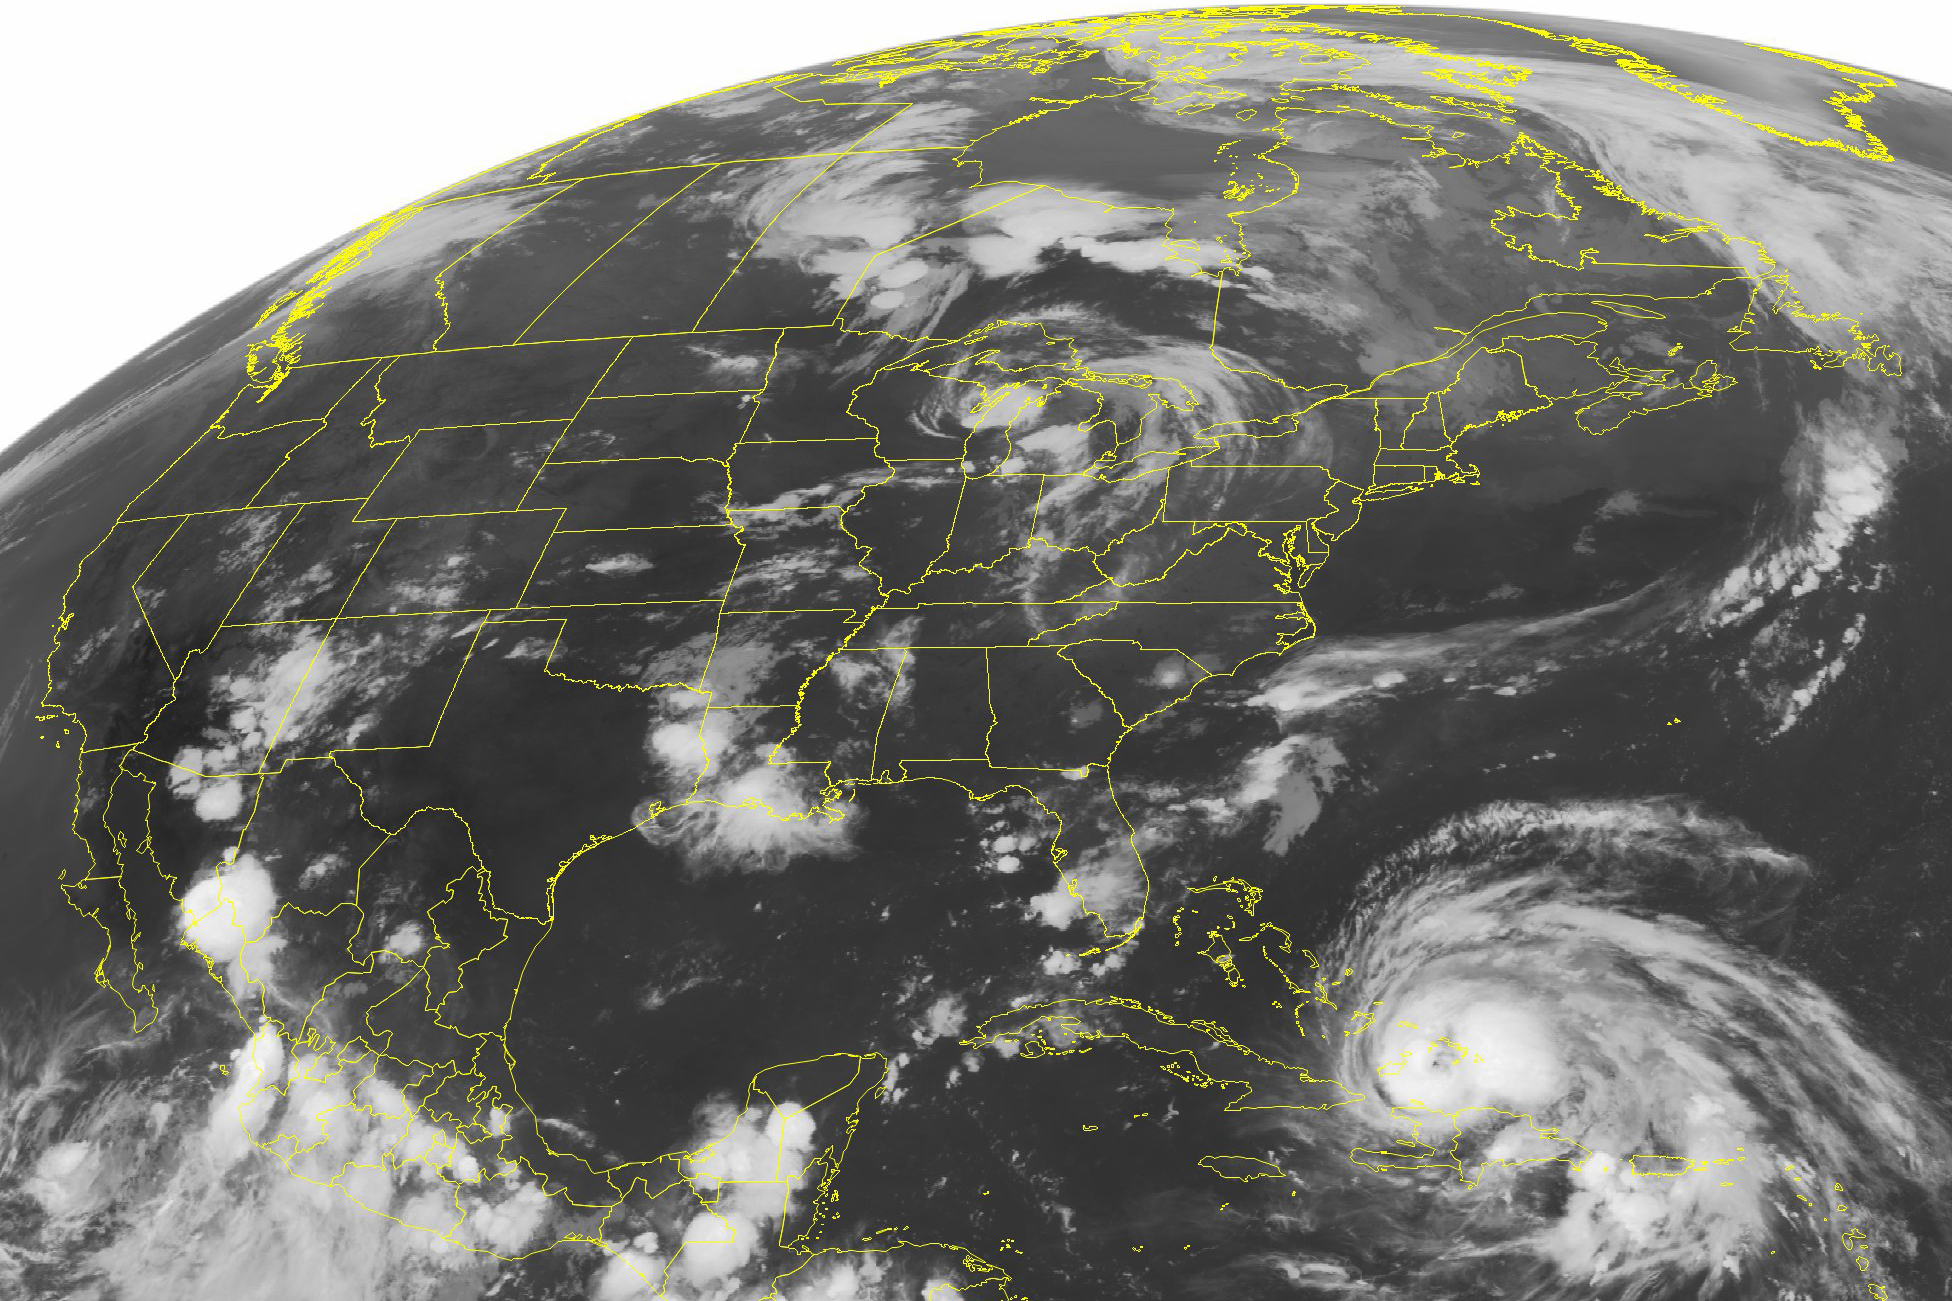 Scientists discover big storms can create stormquakes